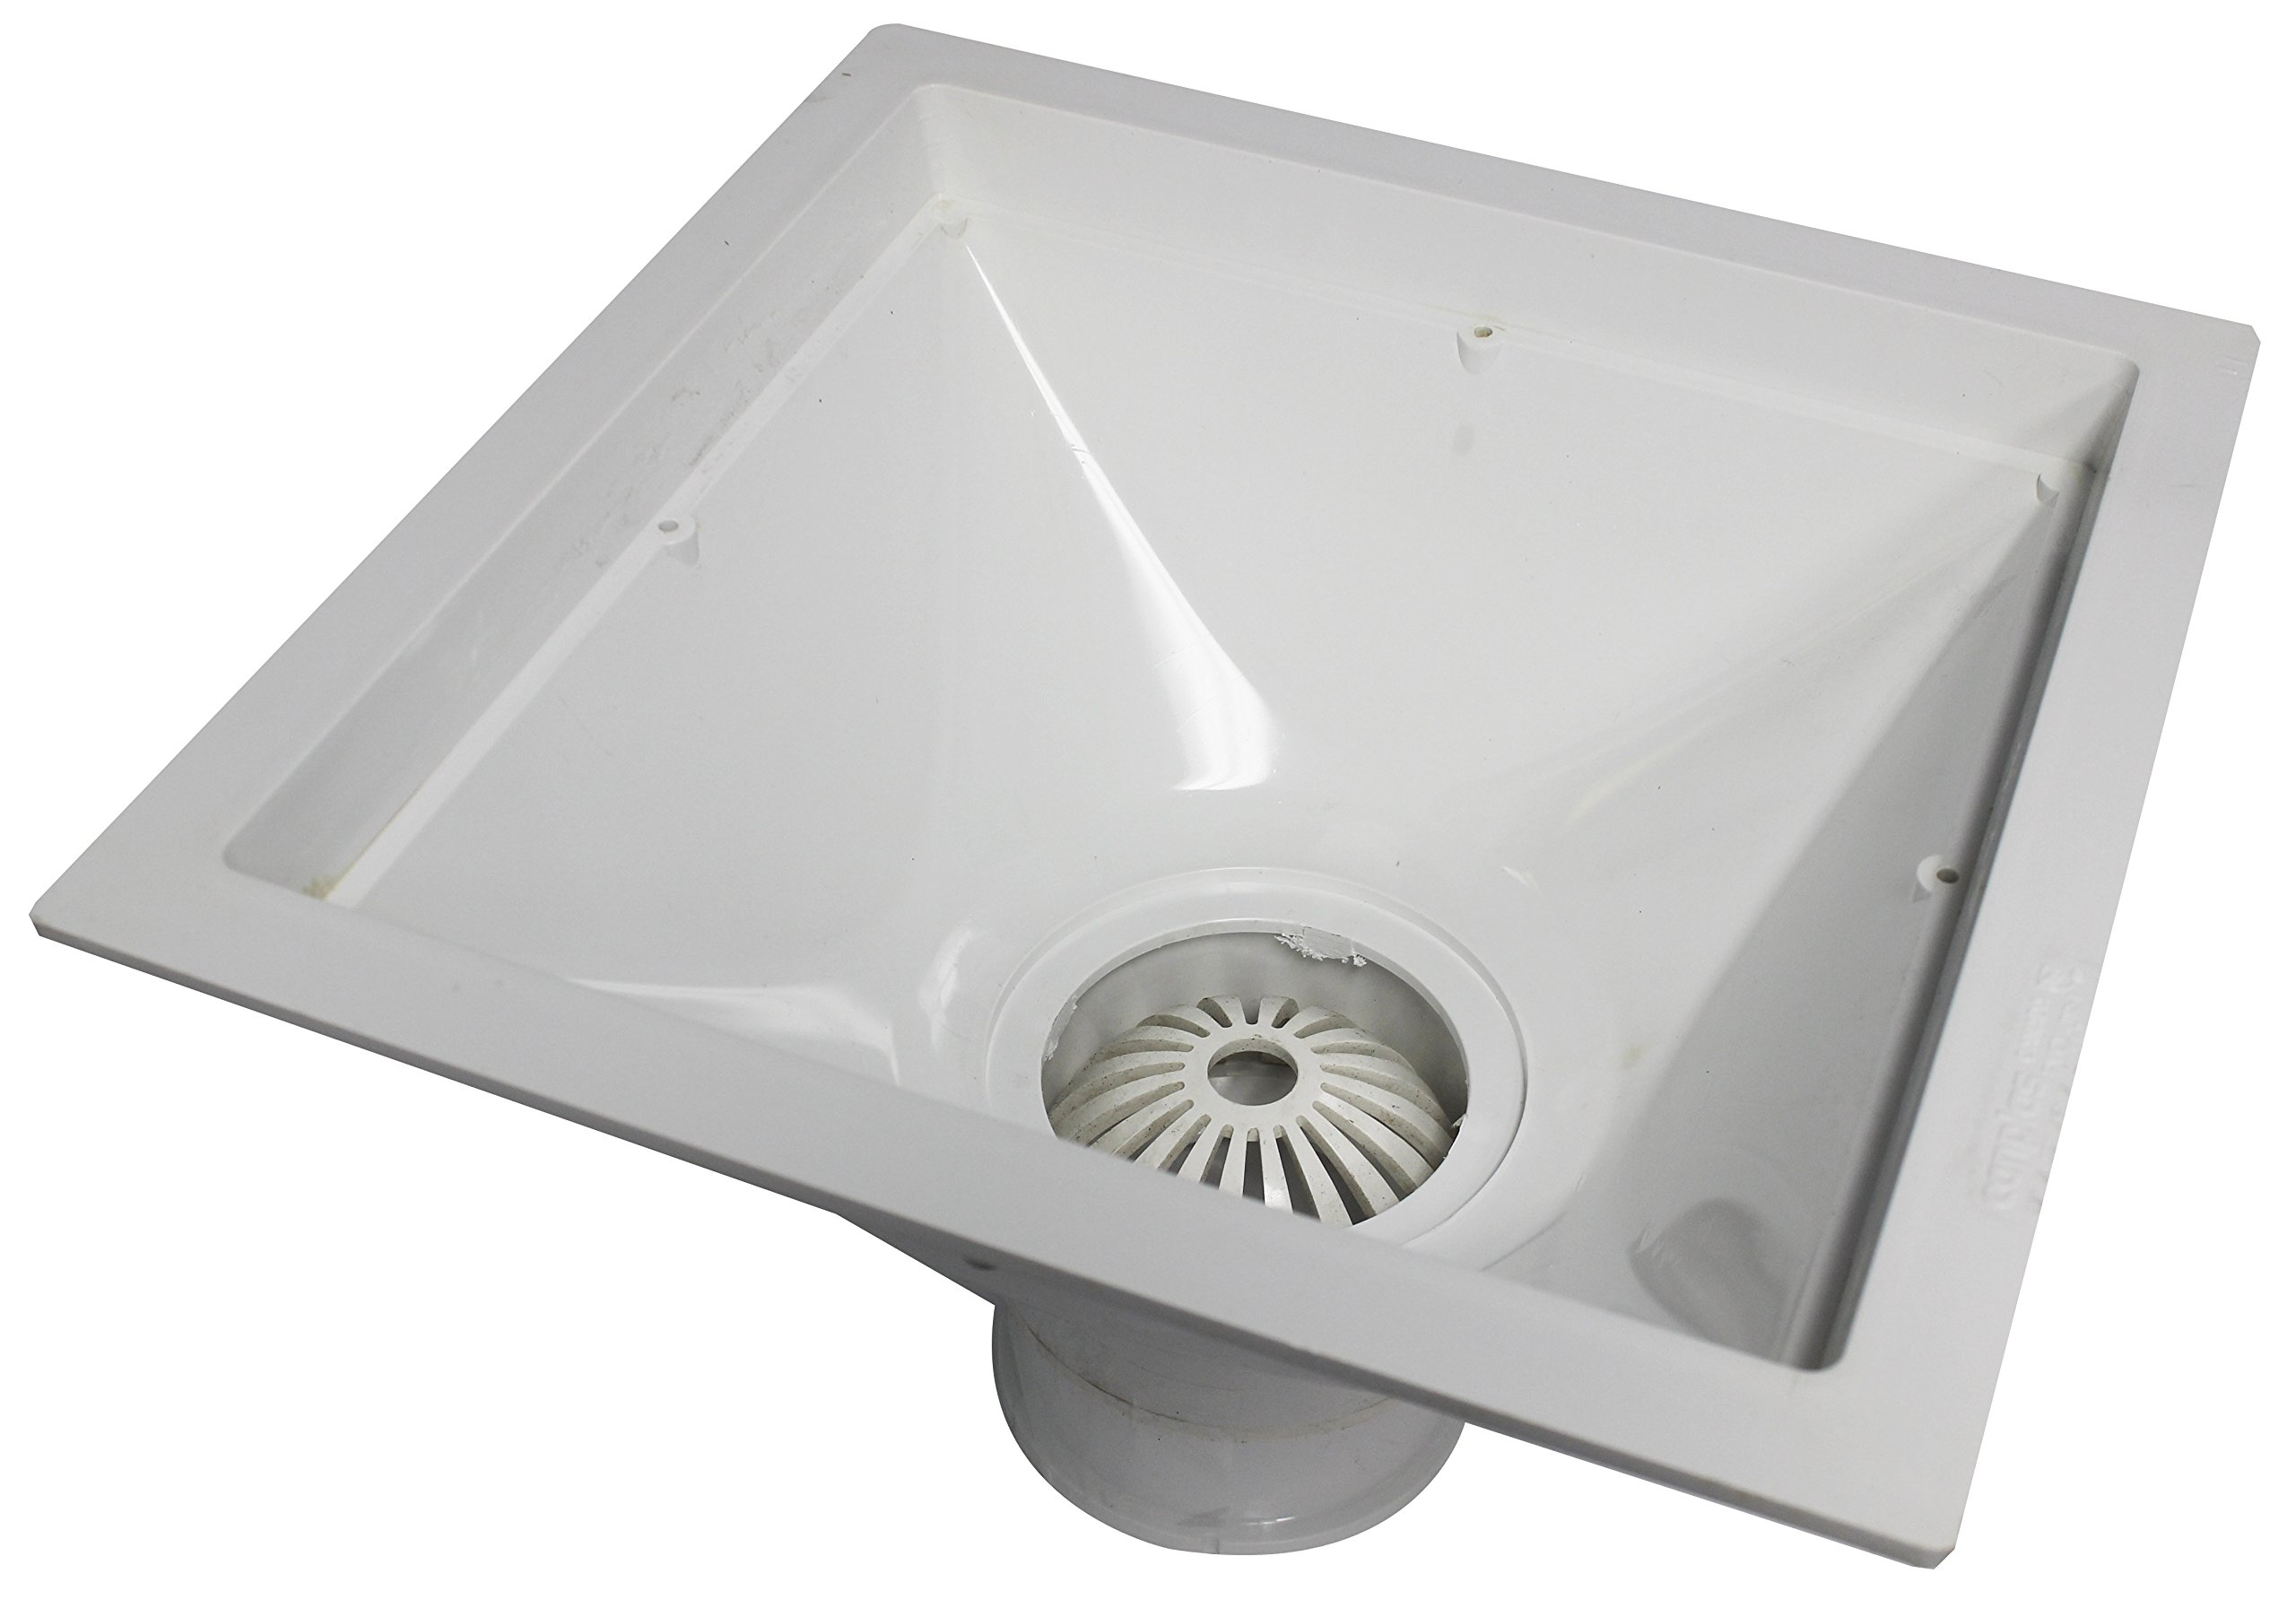 Endura 394723 12-Inch by 12-Inch by 6-Inch PVC Floor Sink for Standard Floor with 3-Inch Hub by Endura